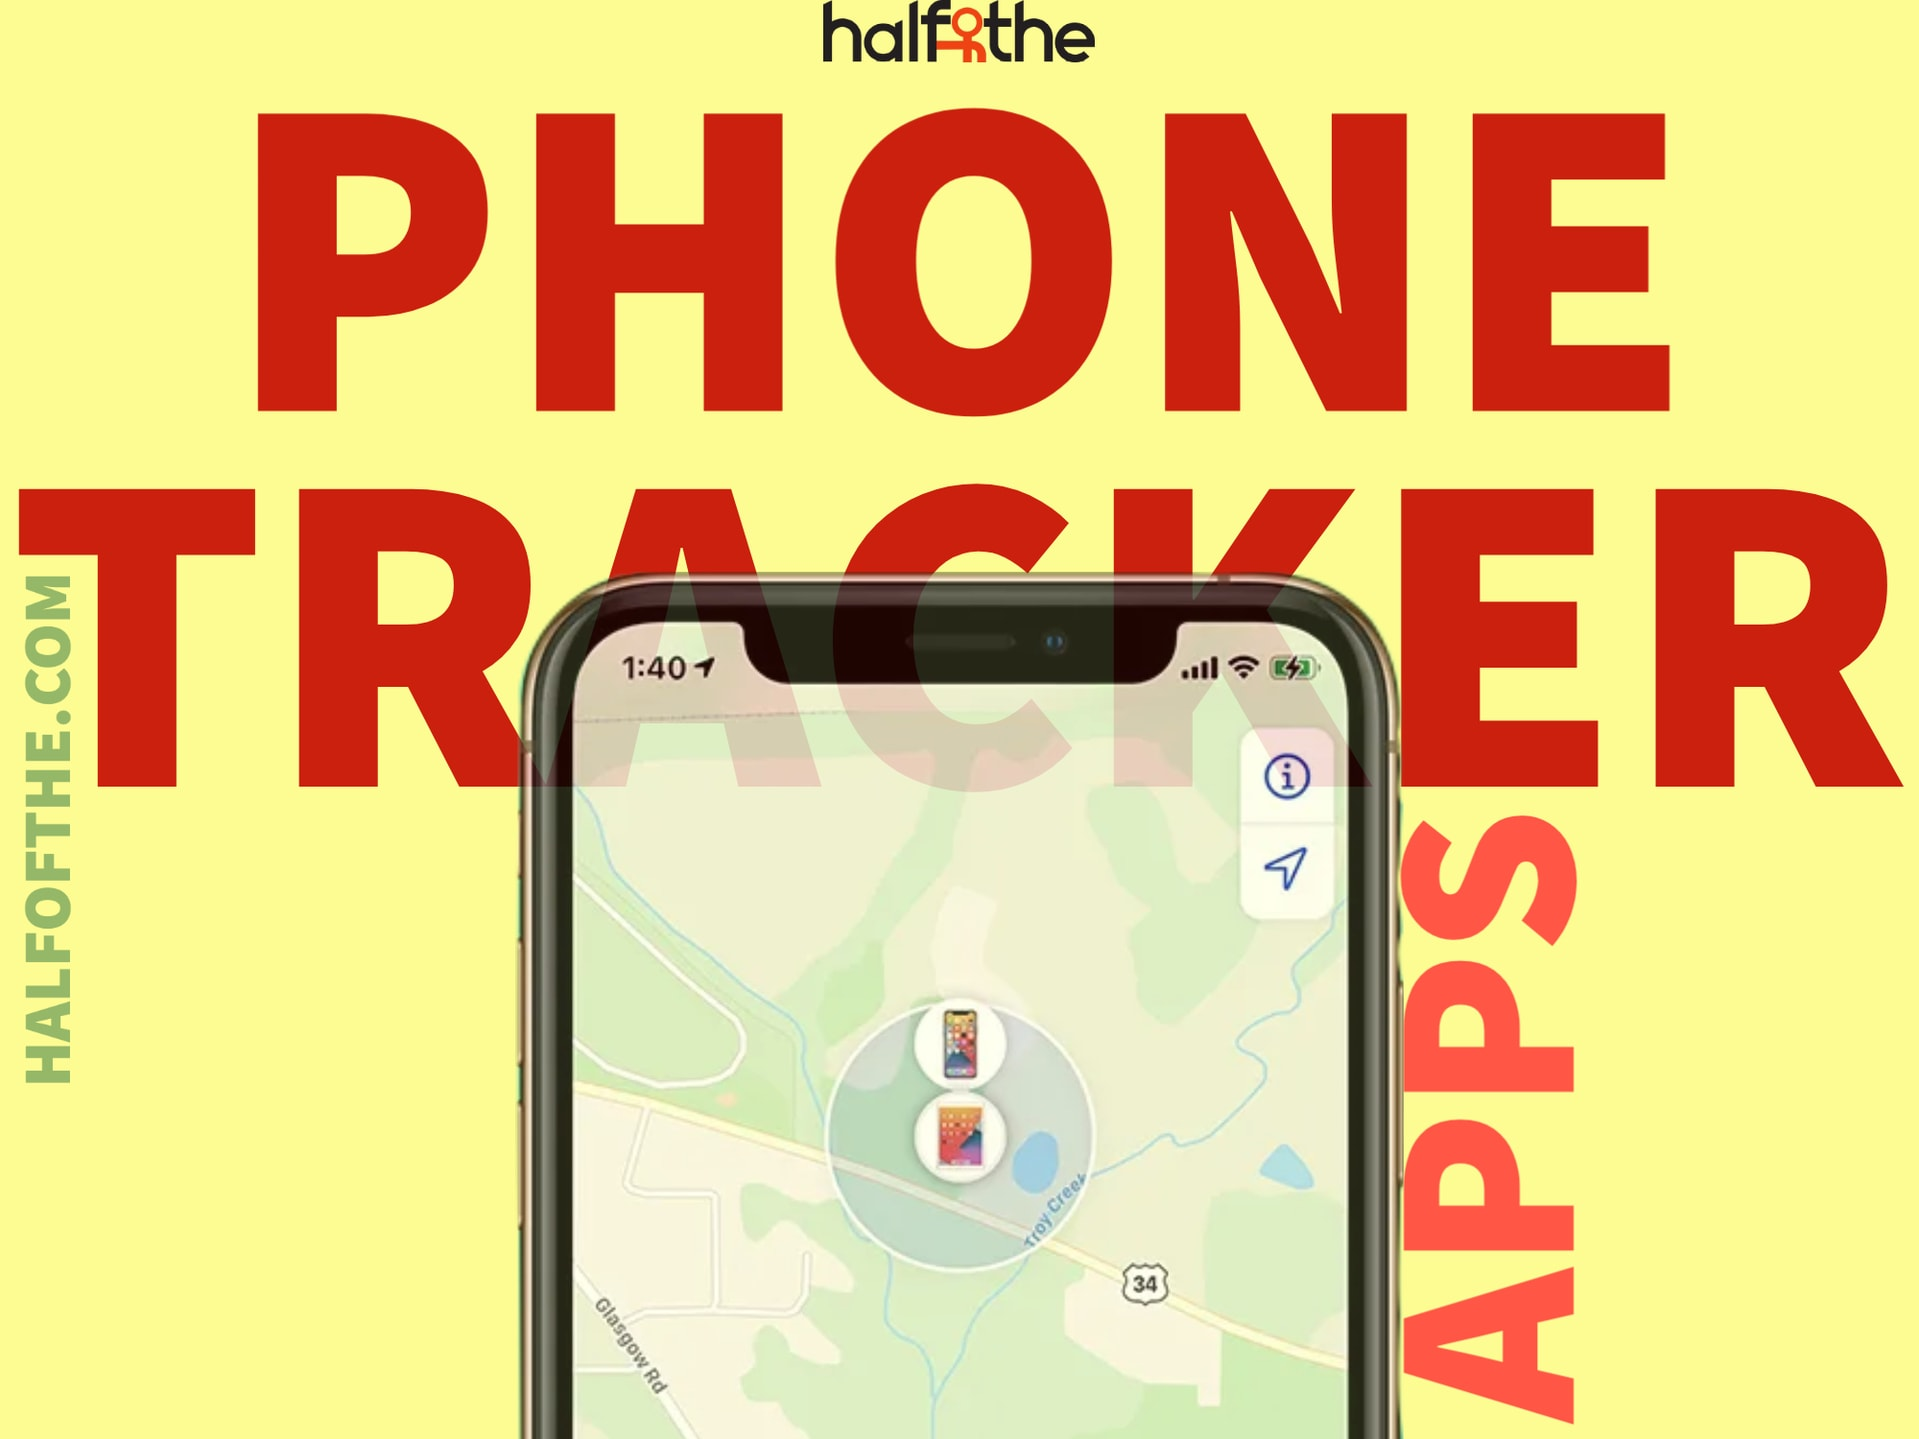 10 Best Phone tracker apps in 2021? Editors choice